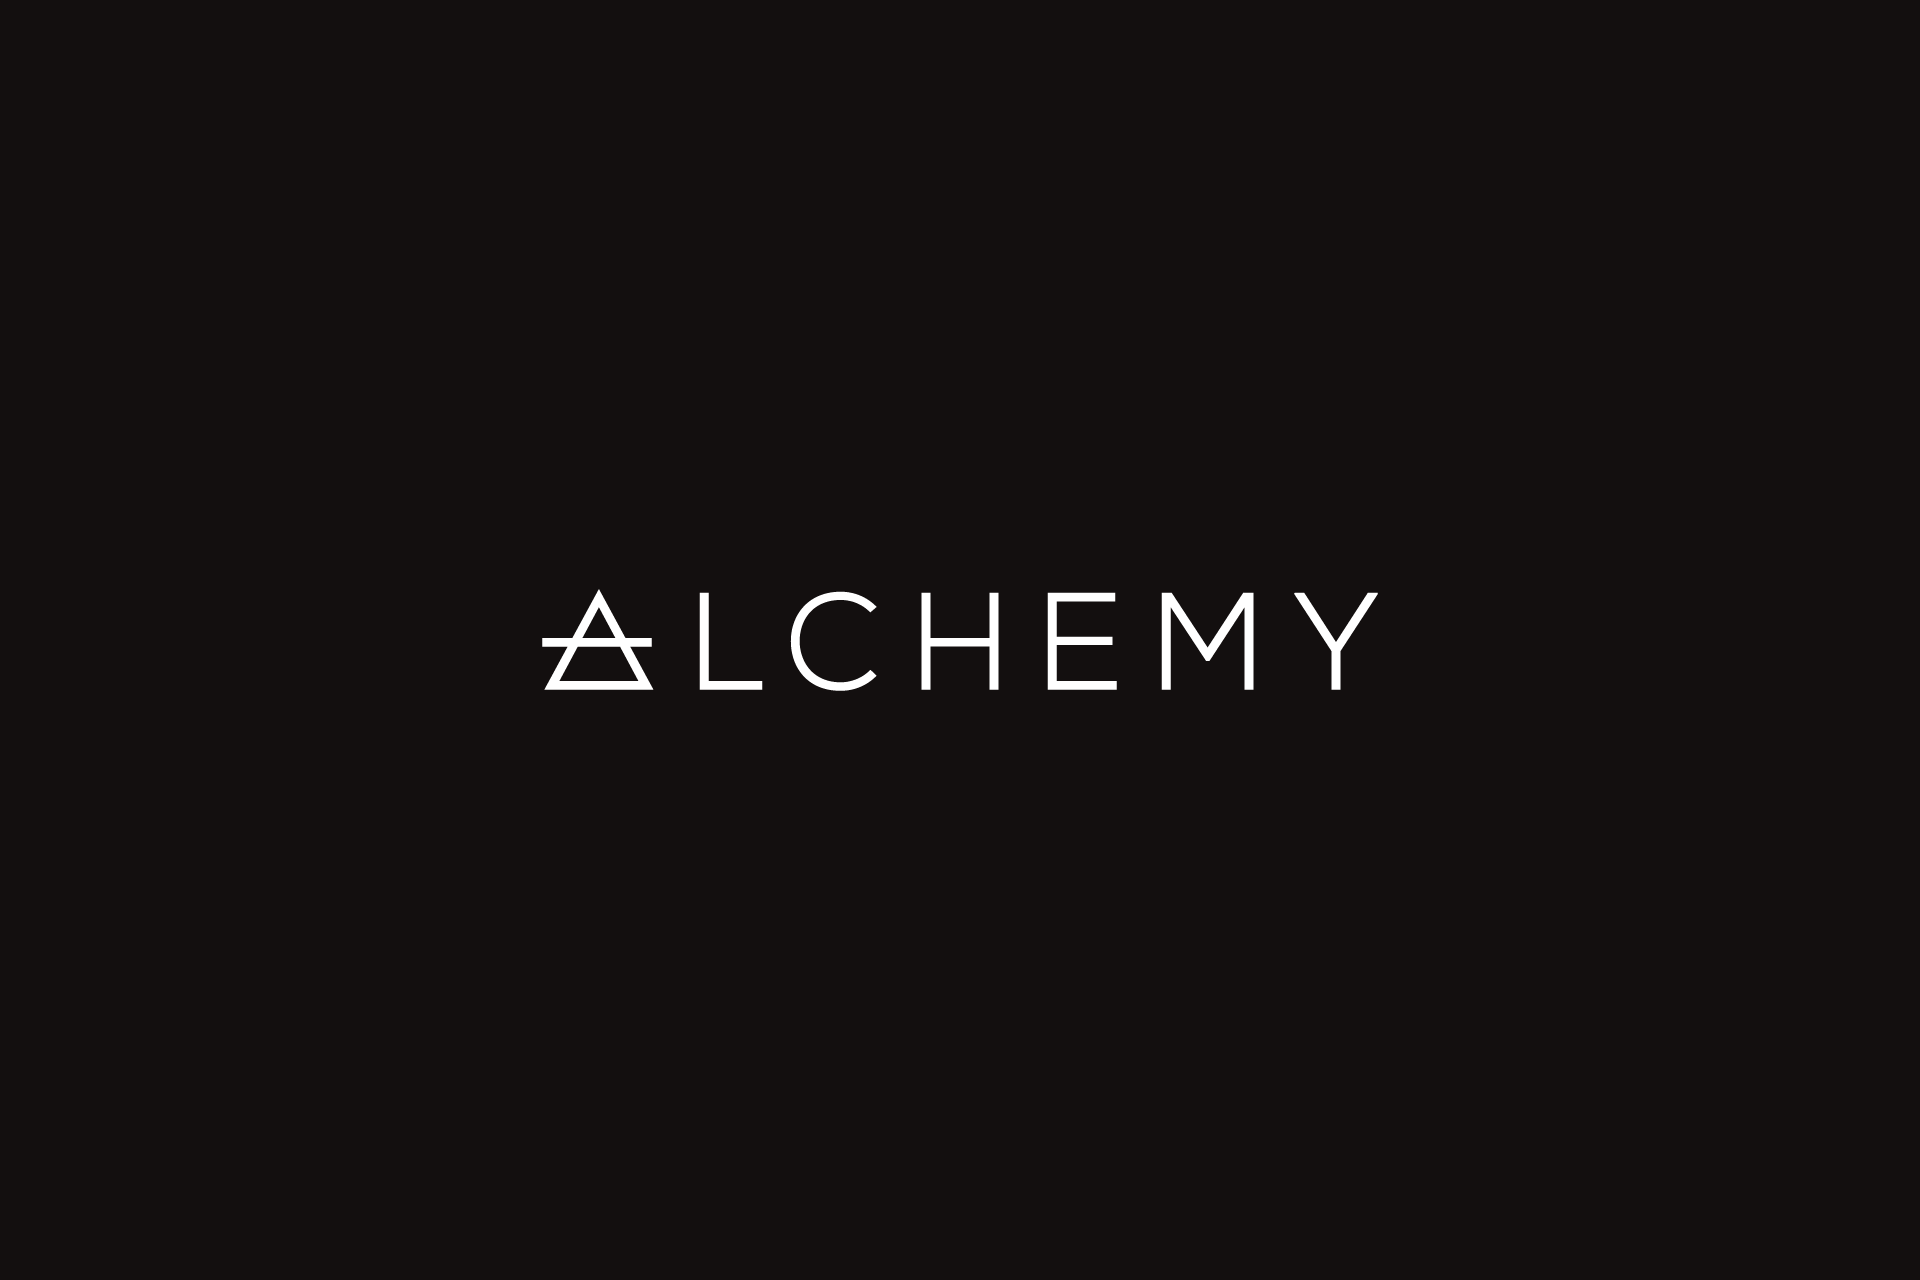 Alchemy-Logo-Design